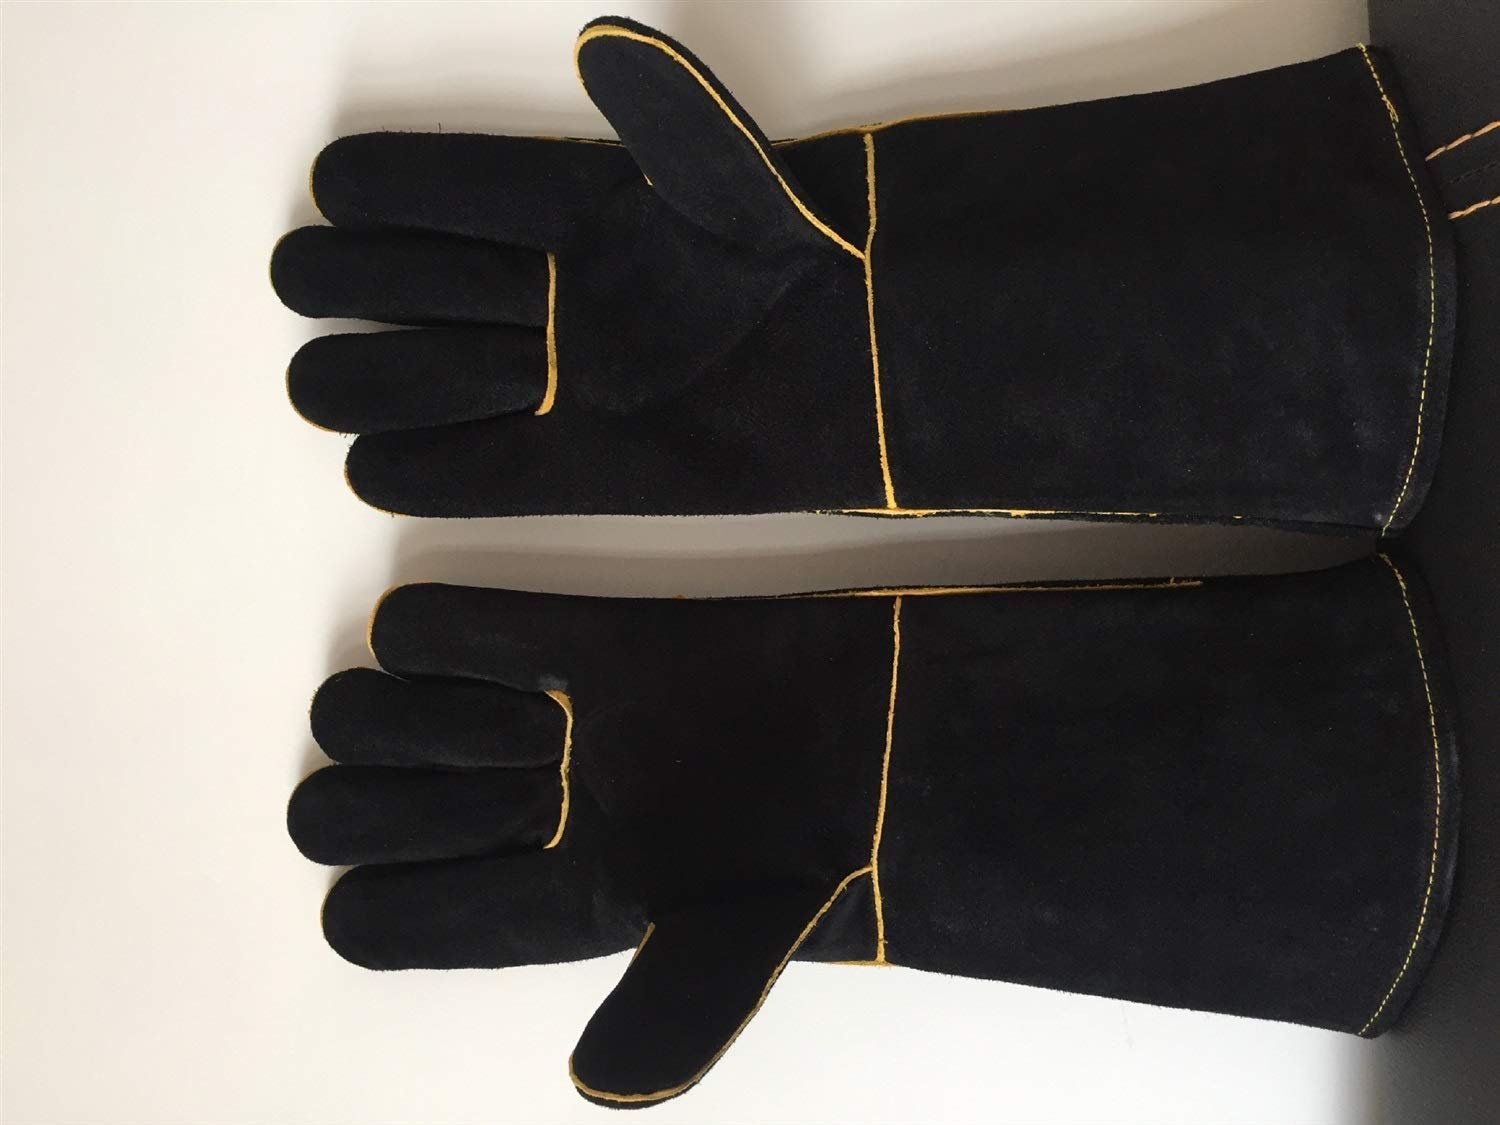 Extreme Heat & Fire Resistant Gloves Leather Perfect for Fireplace, Stove, Oven Mitt, Grill Pit, Welding, Furnace,BBQ,Mig, Pot Holder,Black,16 Inch Home & Kitchen (Color : Black, Size : L-One Pair) by YAOSHIBIAN-Oven Mitts (Image #6)